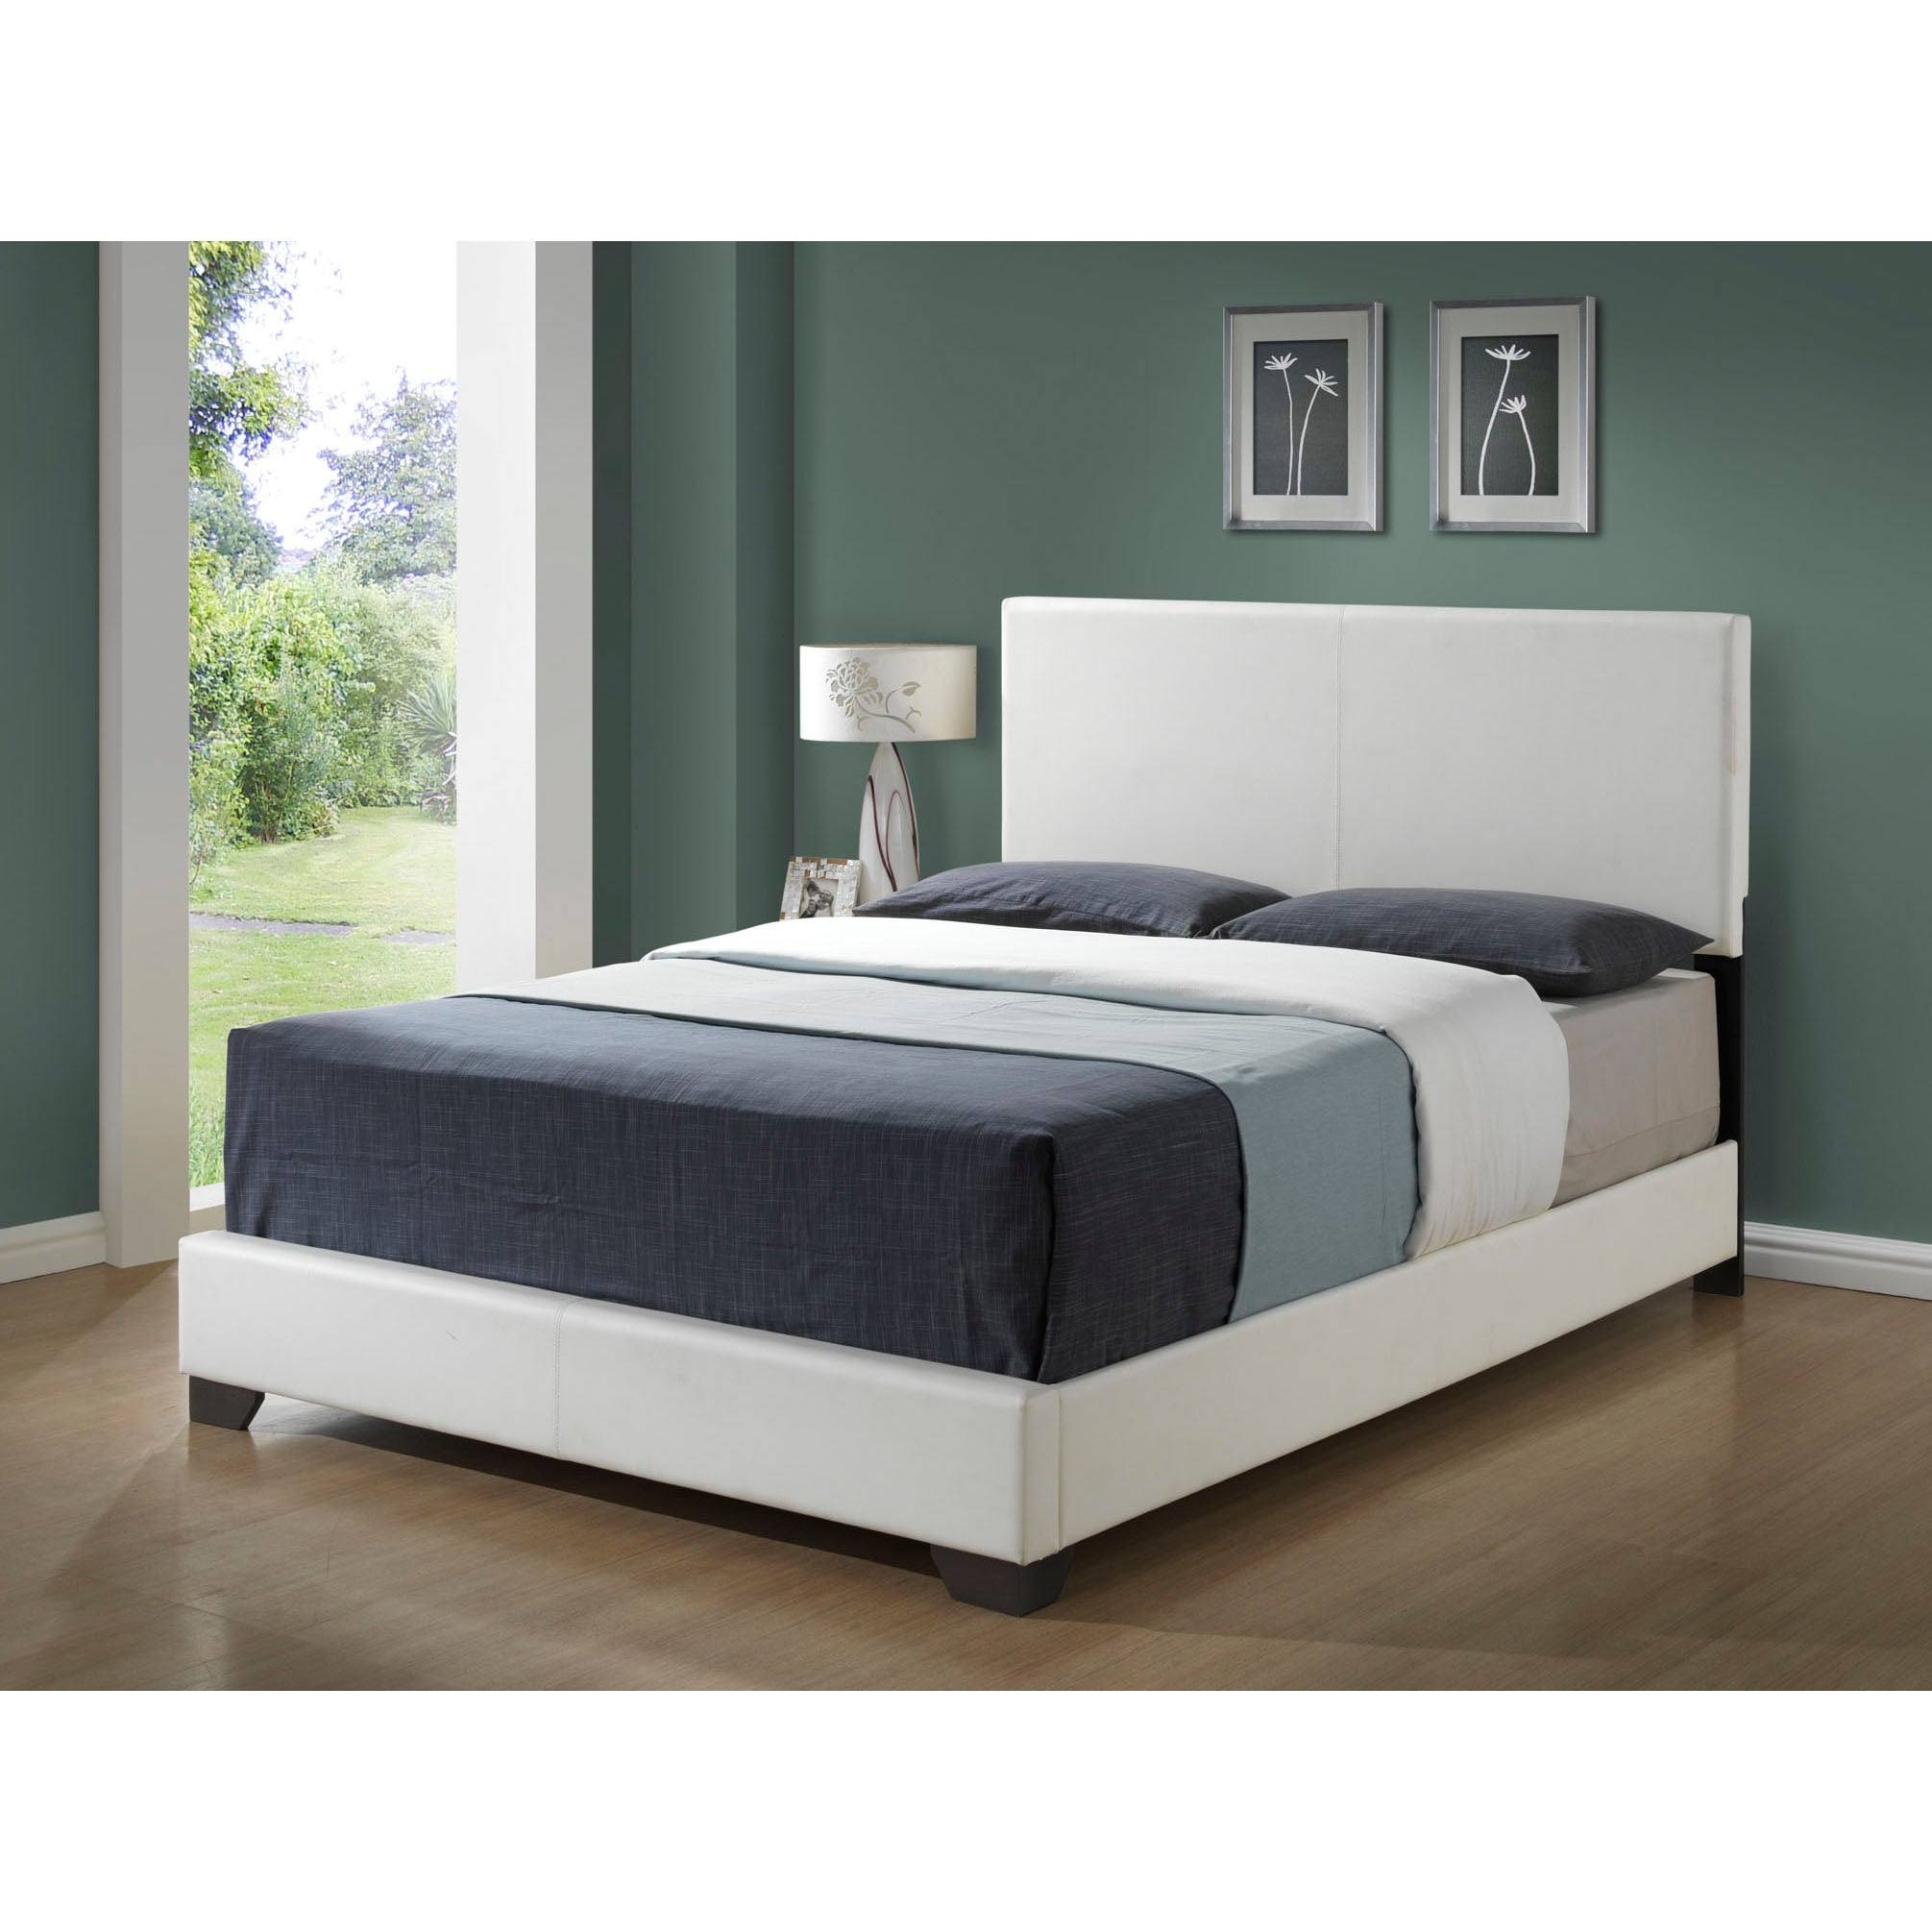 white leather look queen size bed